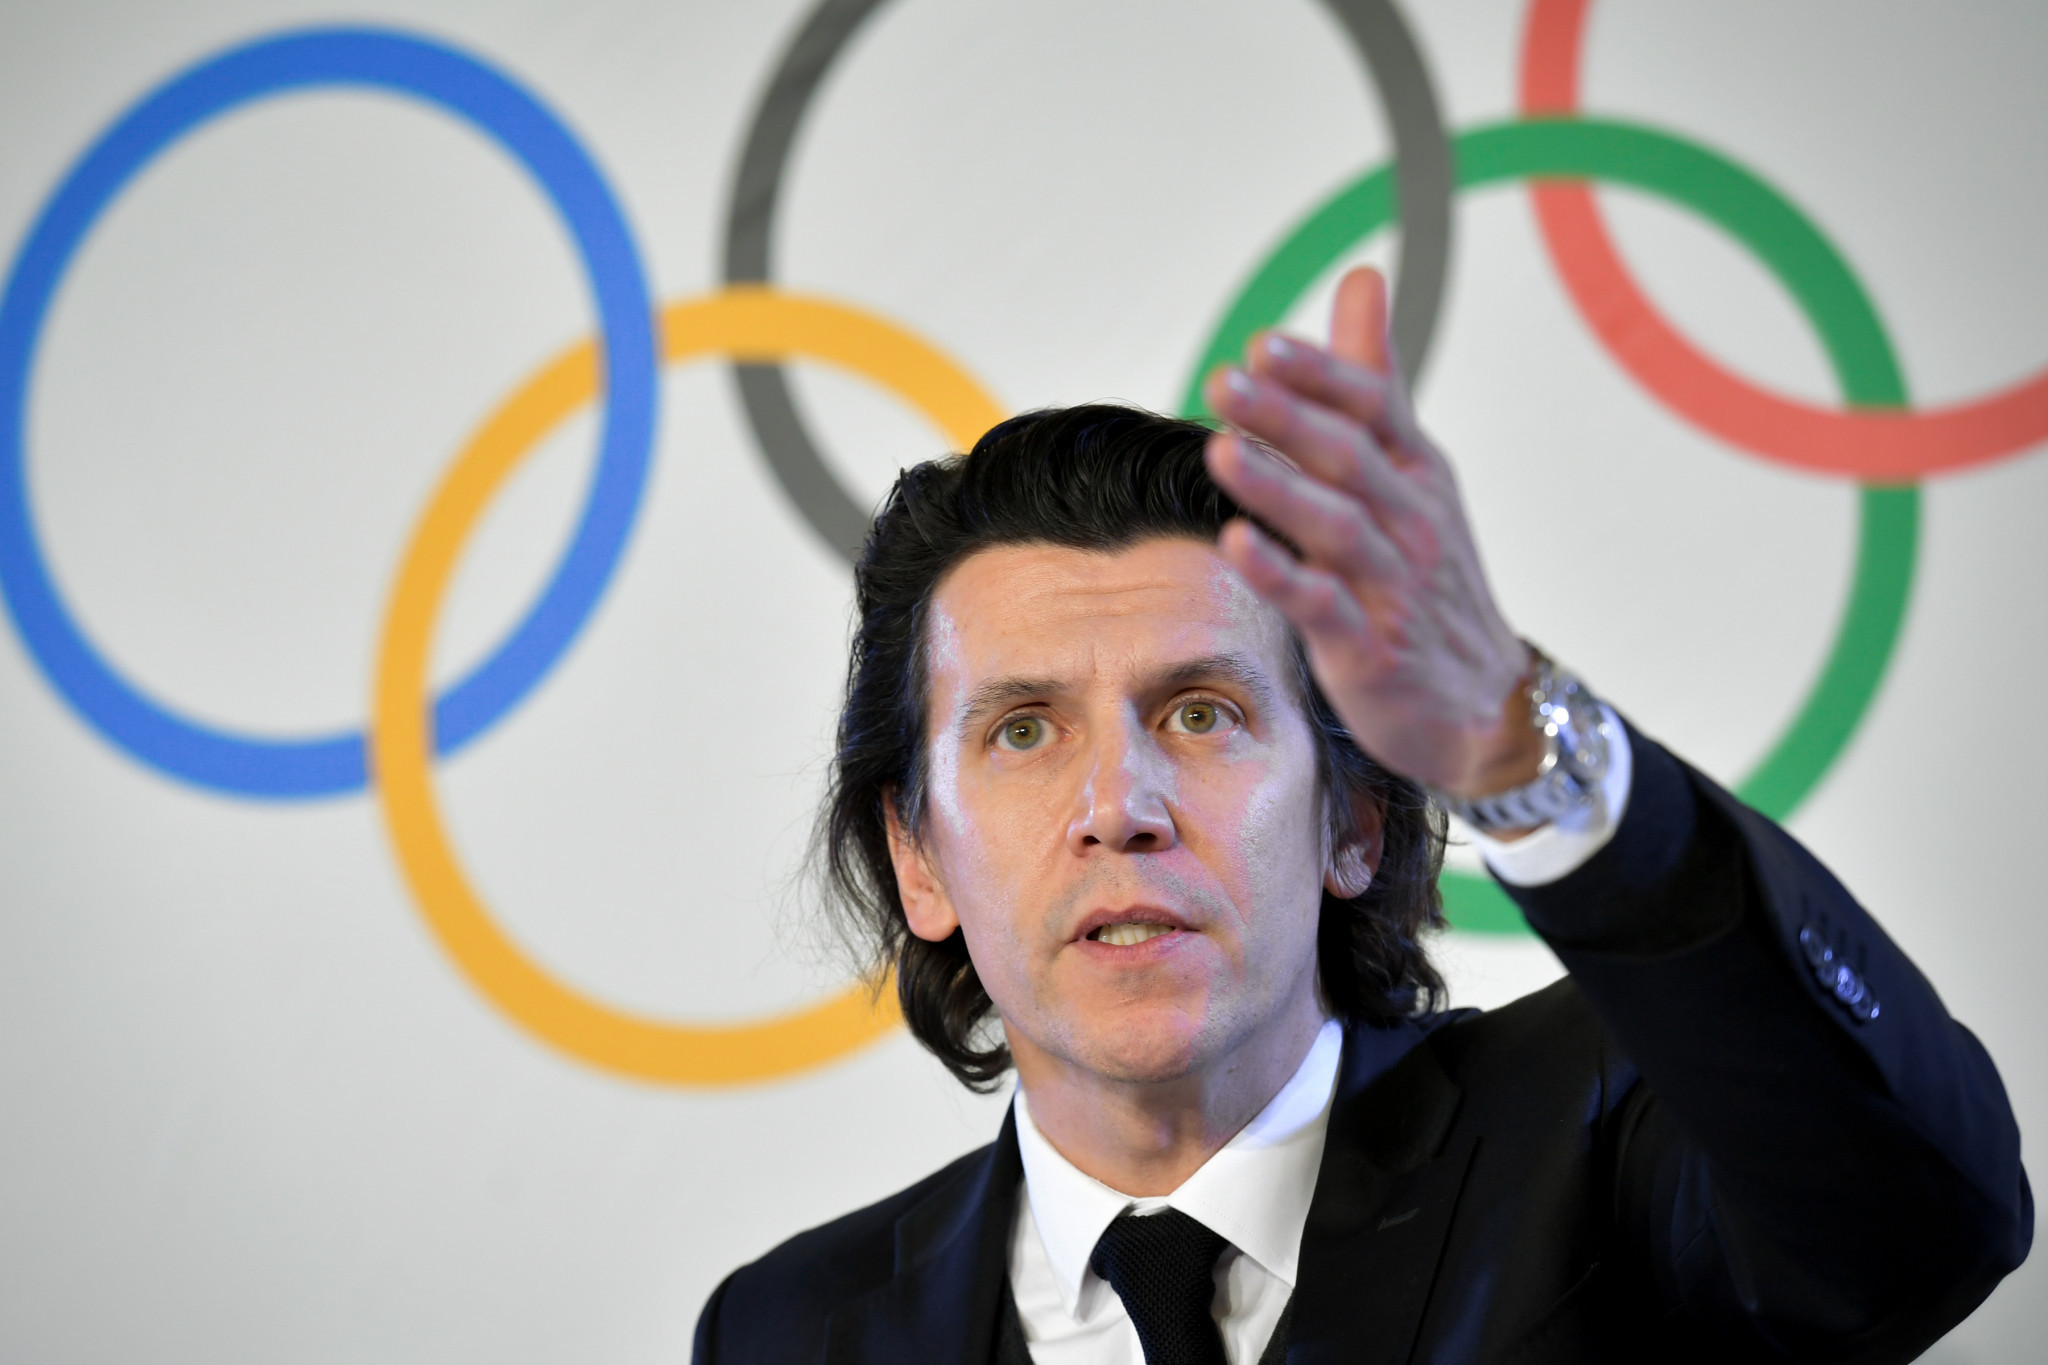 Dubi confident in staying power of 2026 Winter Olympic and Paralympic bid candidates